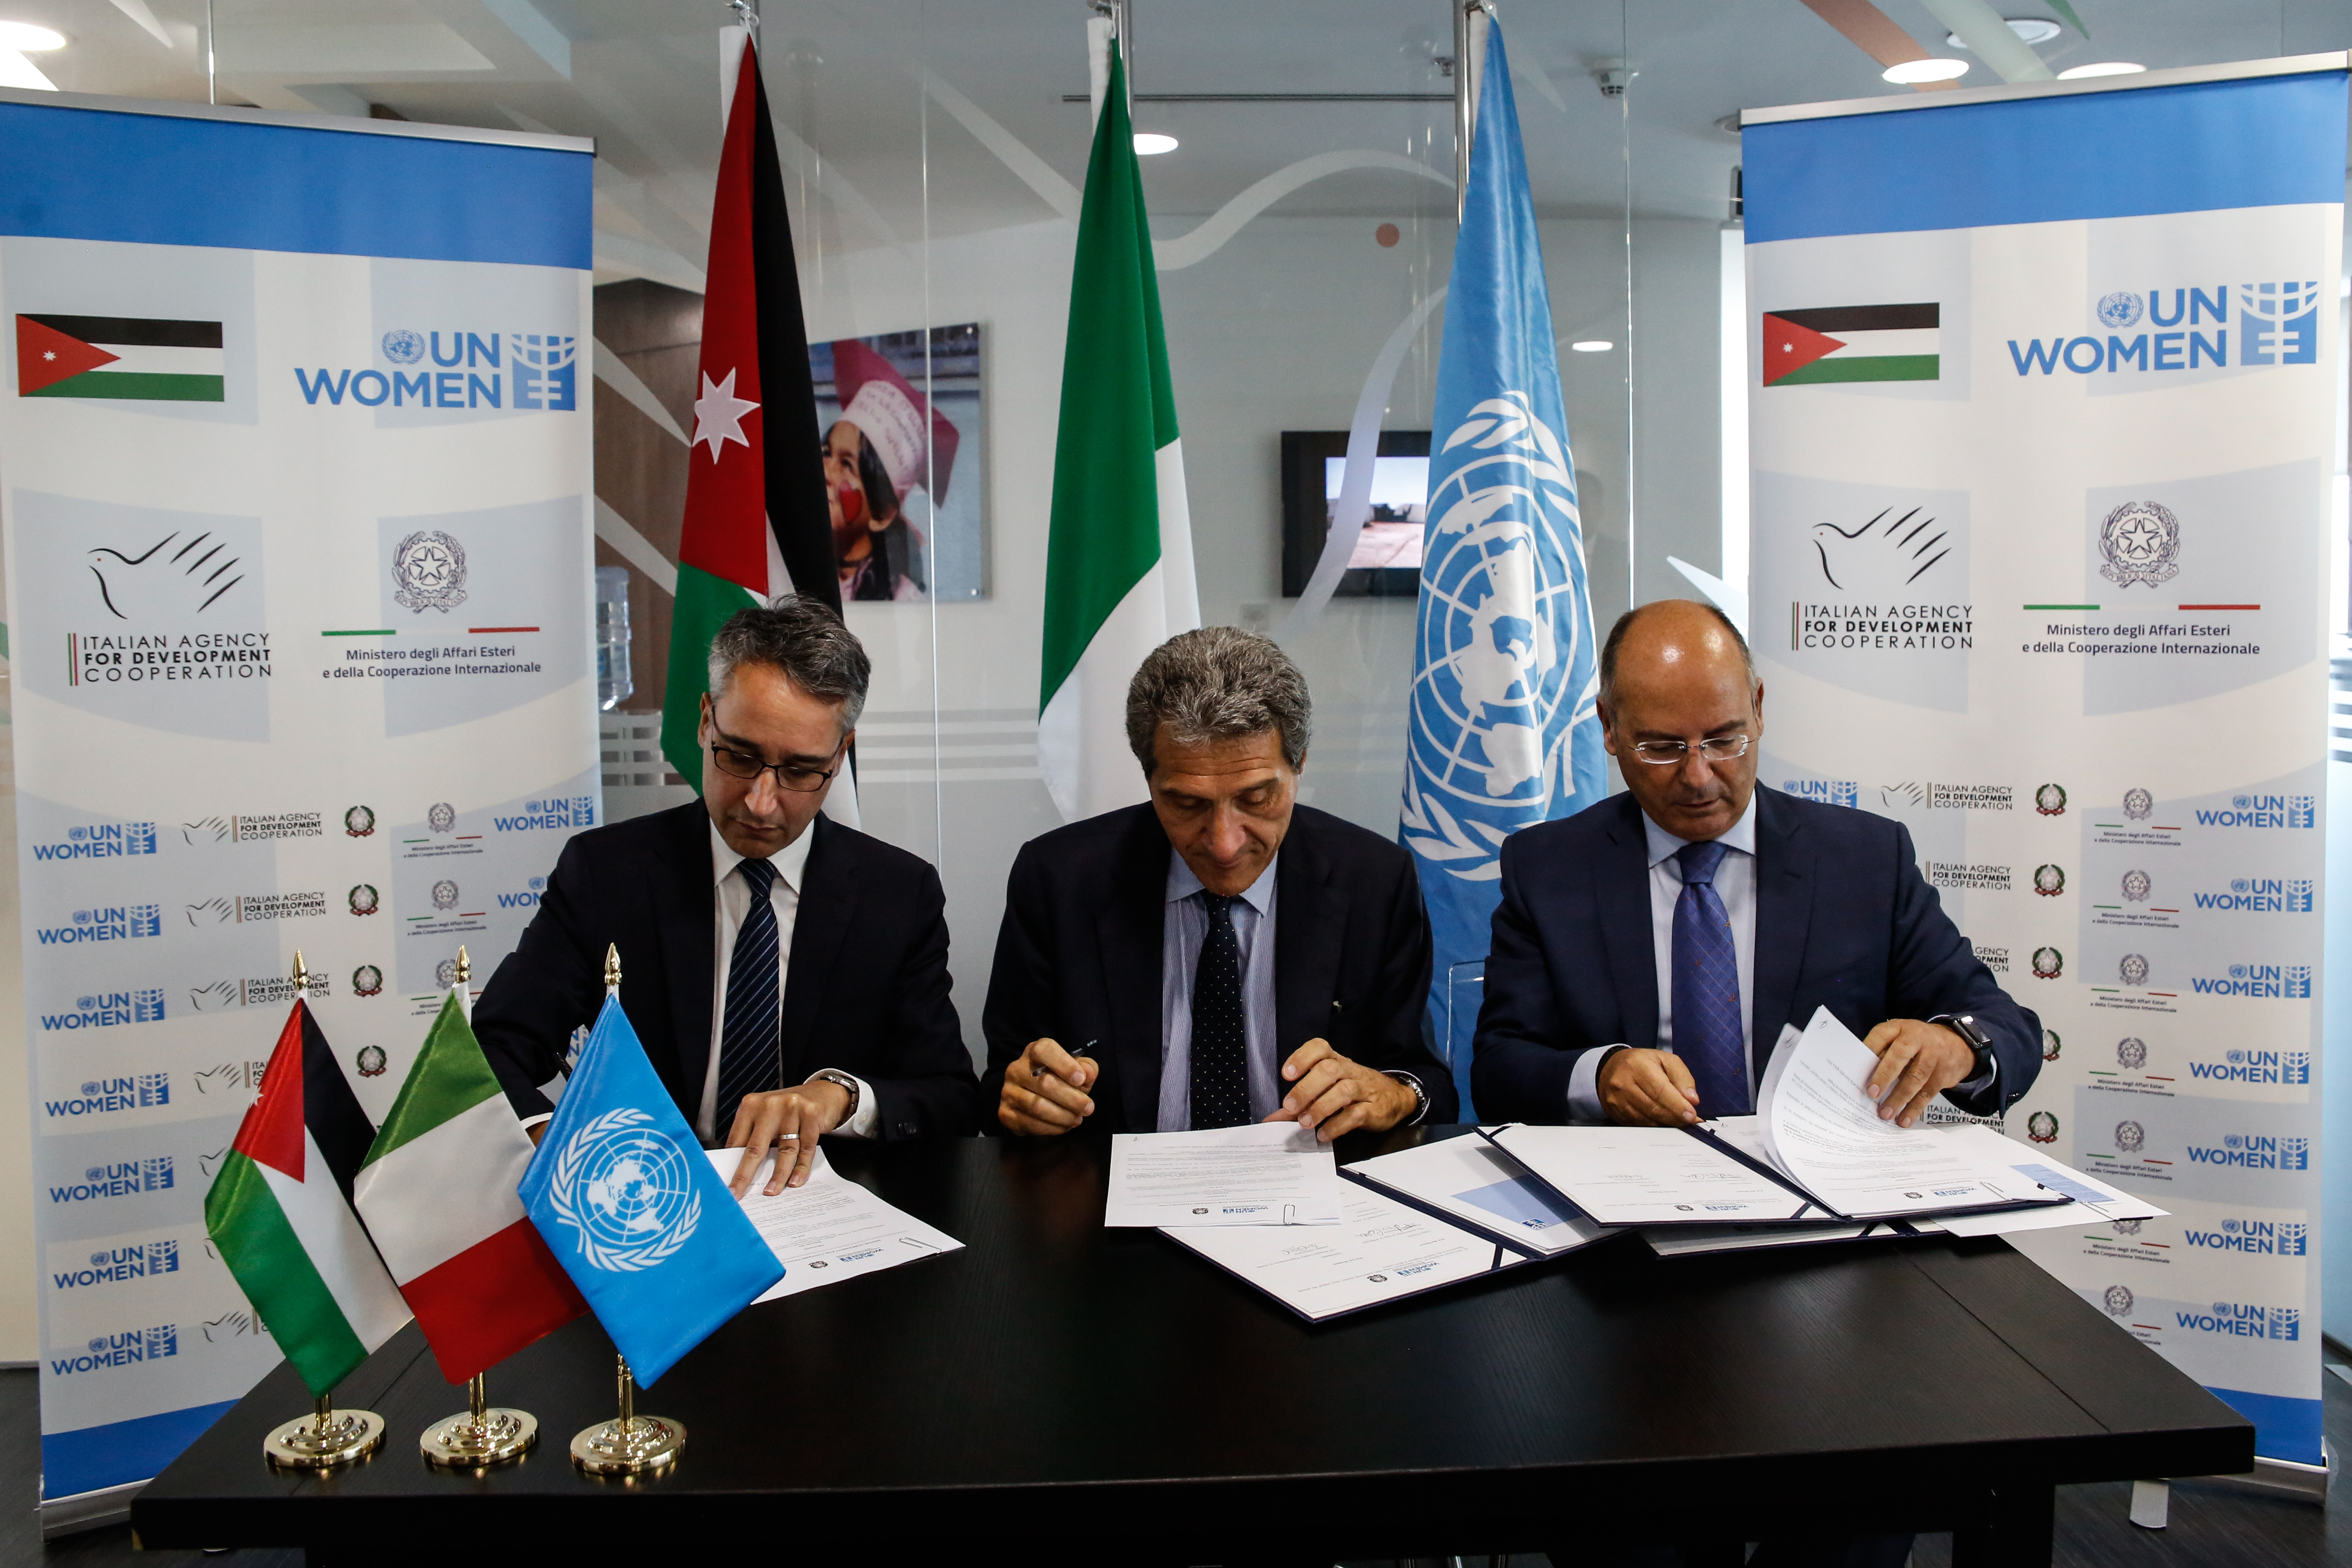 Italy and UN Women Partnership